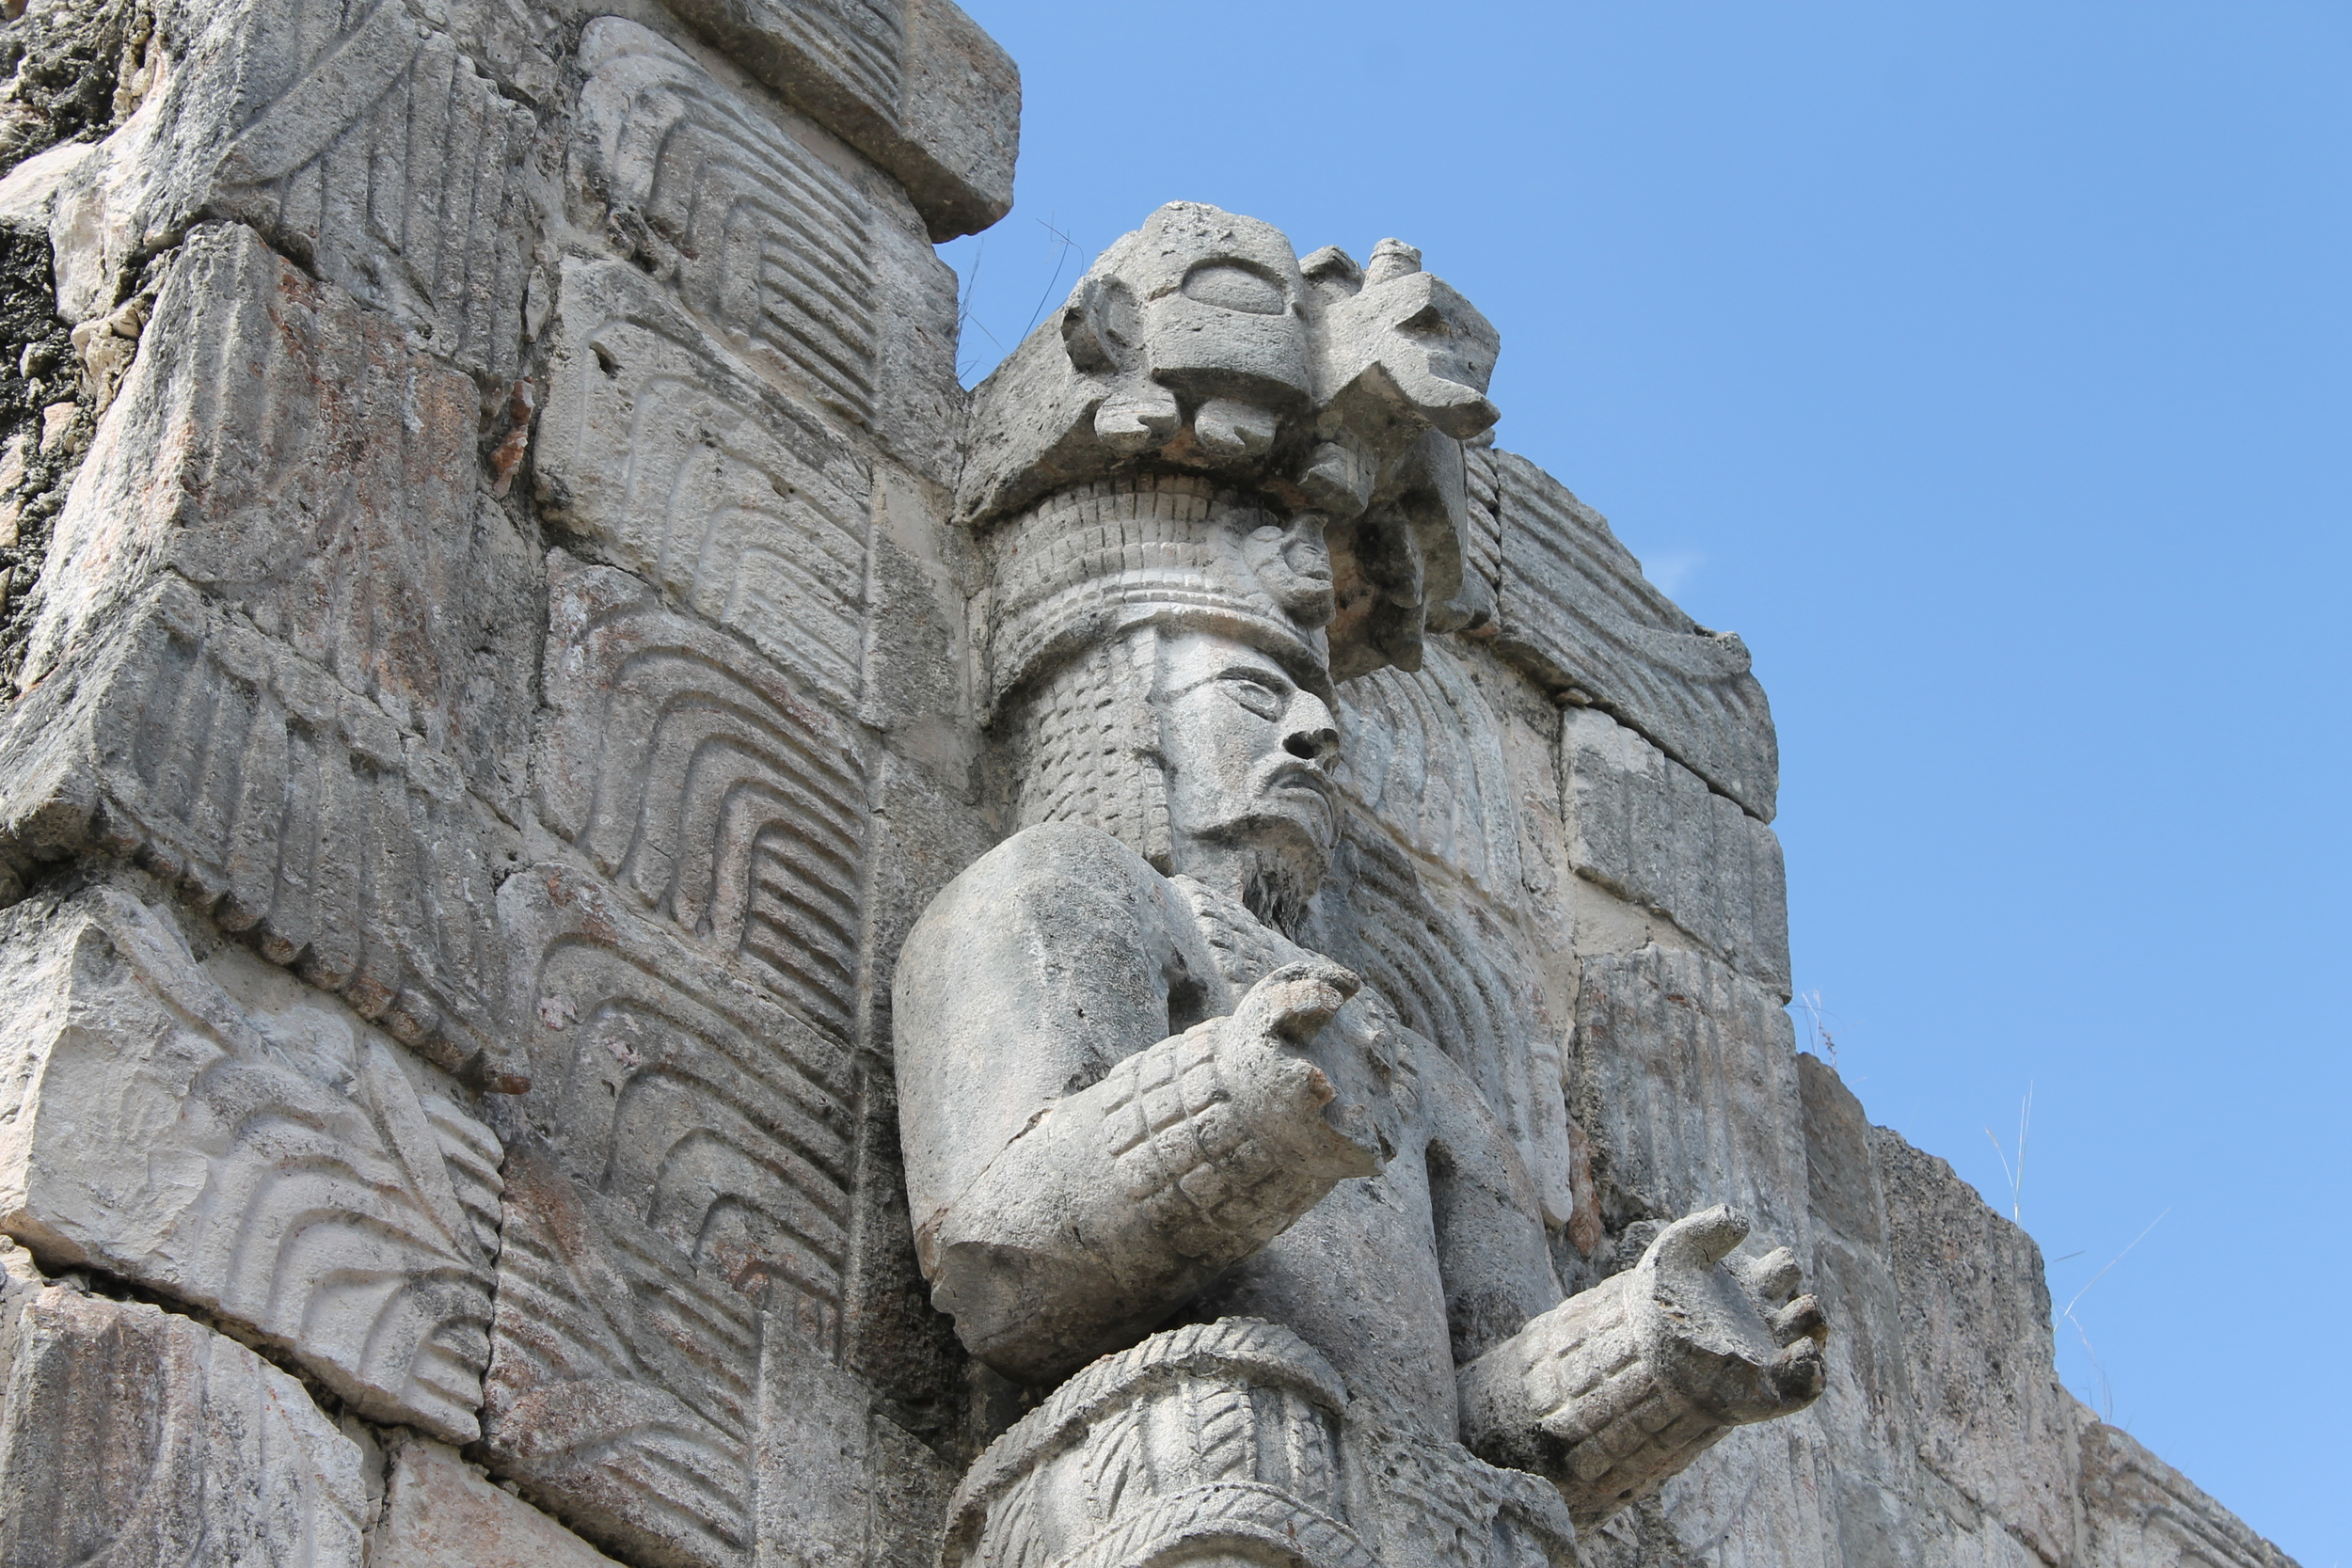 This is one of several carved figures you can see at Kabah, just down the road from Uxmal